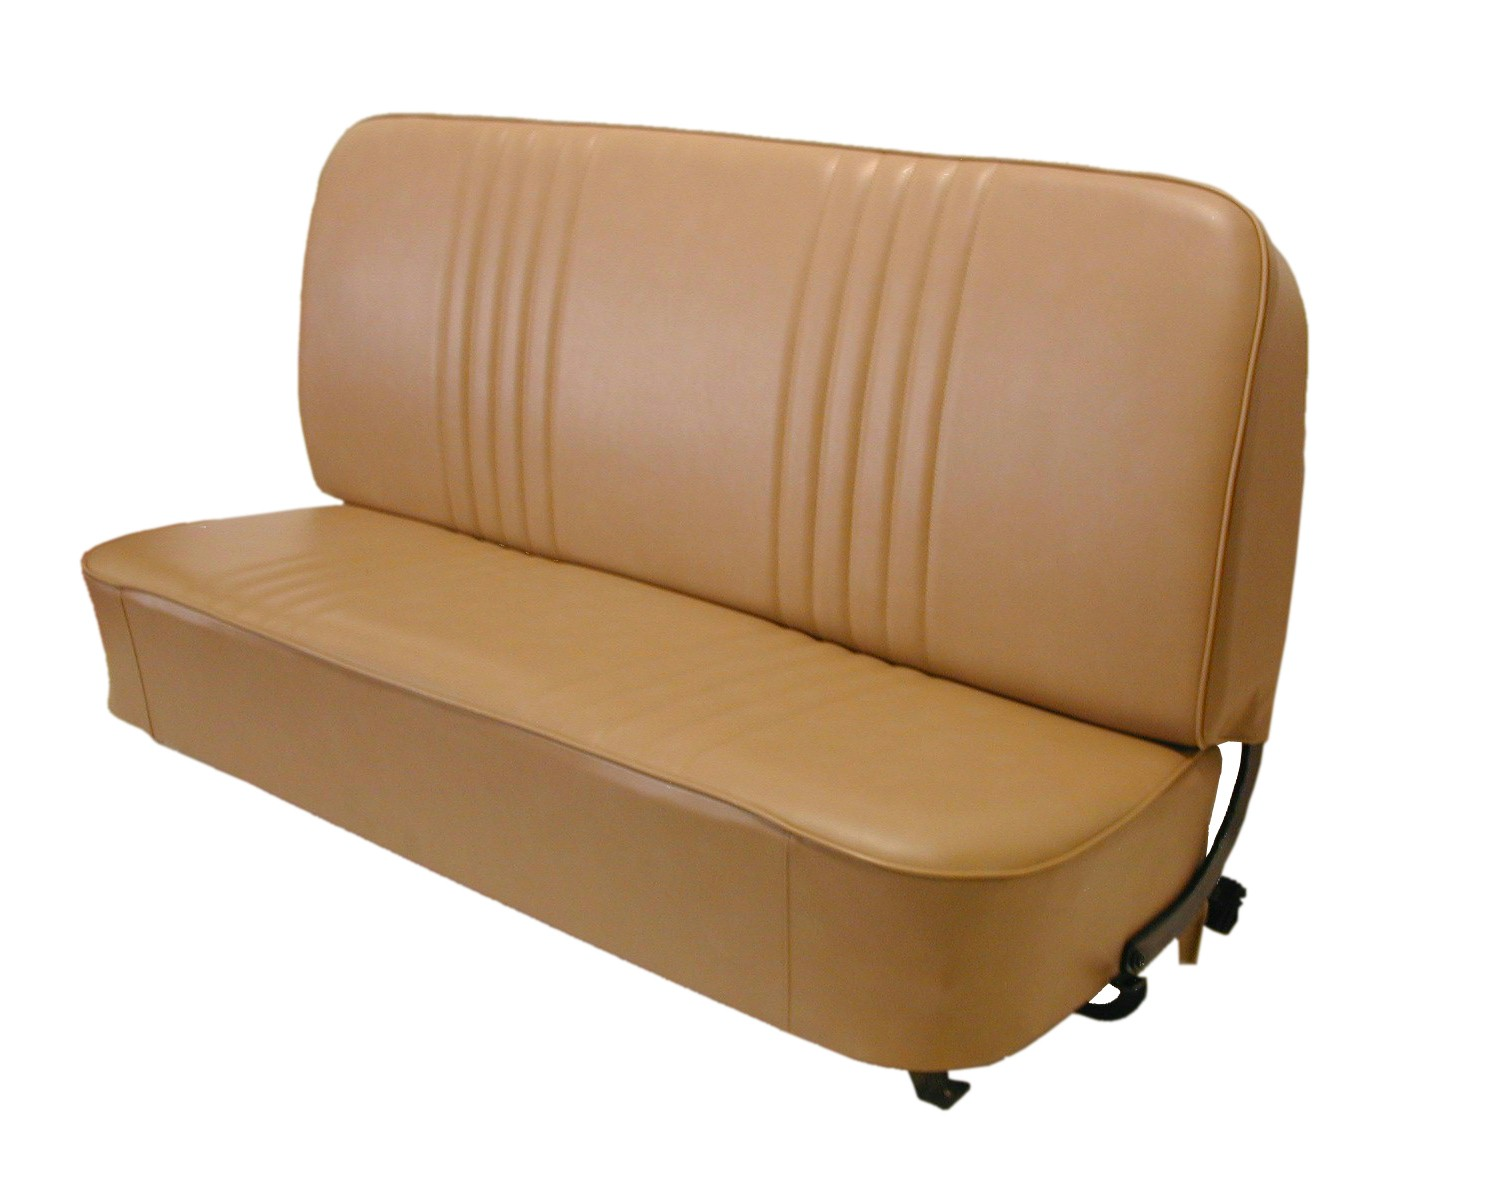 Bench Seat Reupholstery Kits Trucks